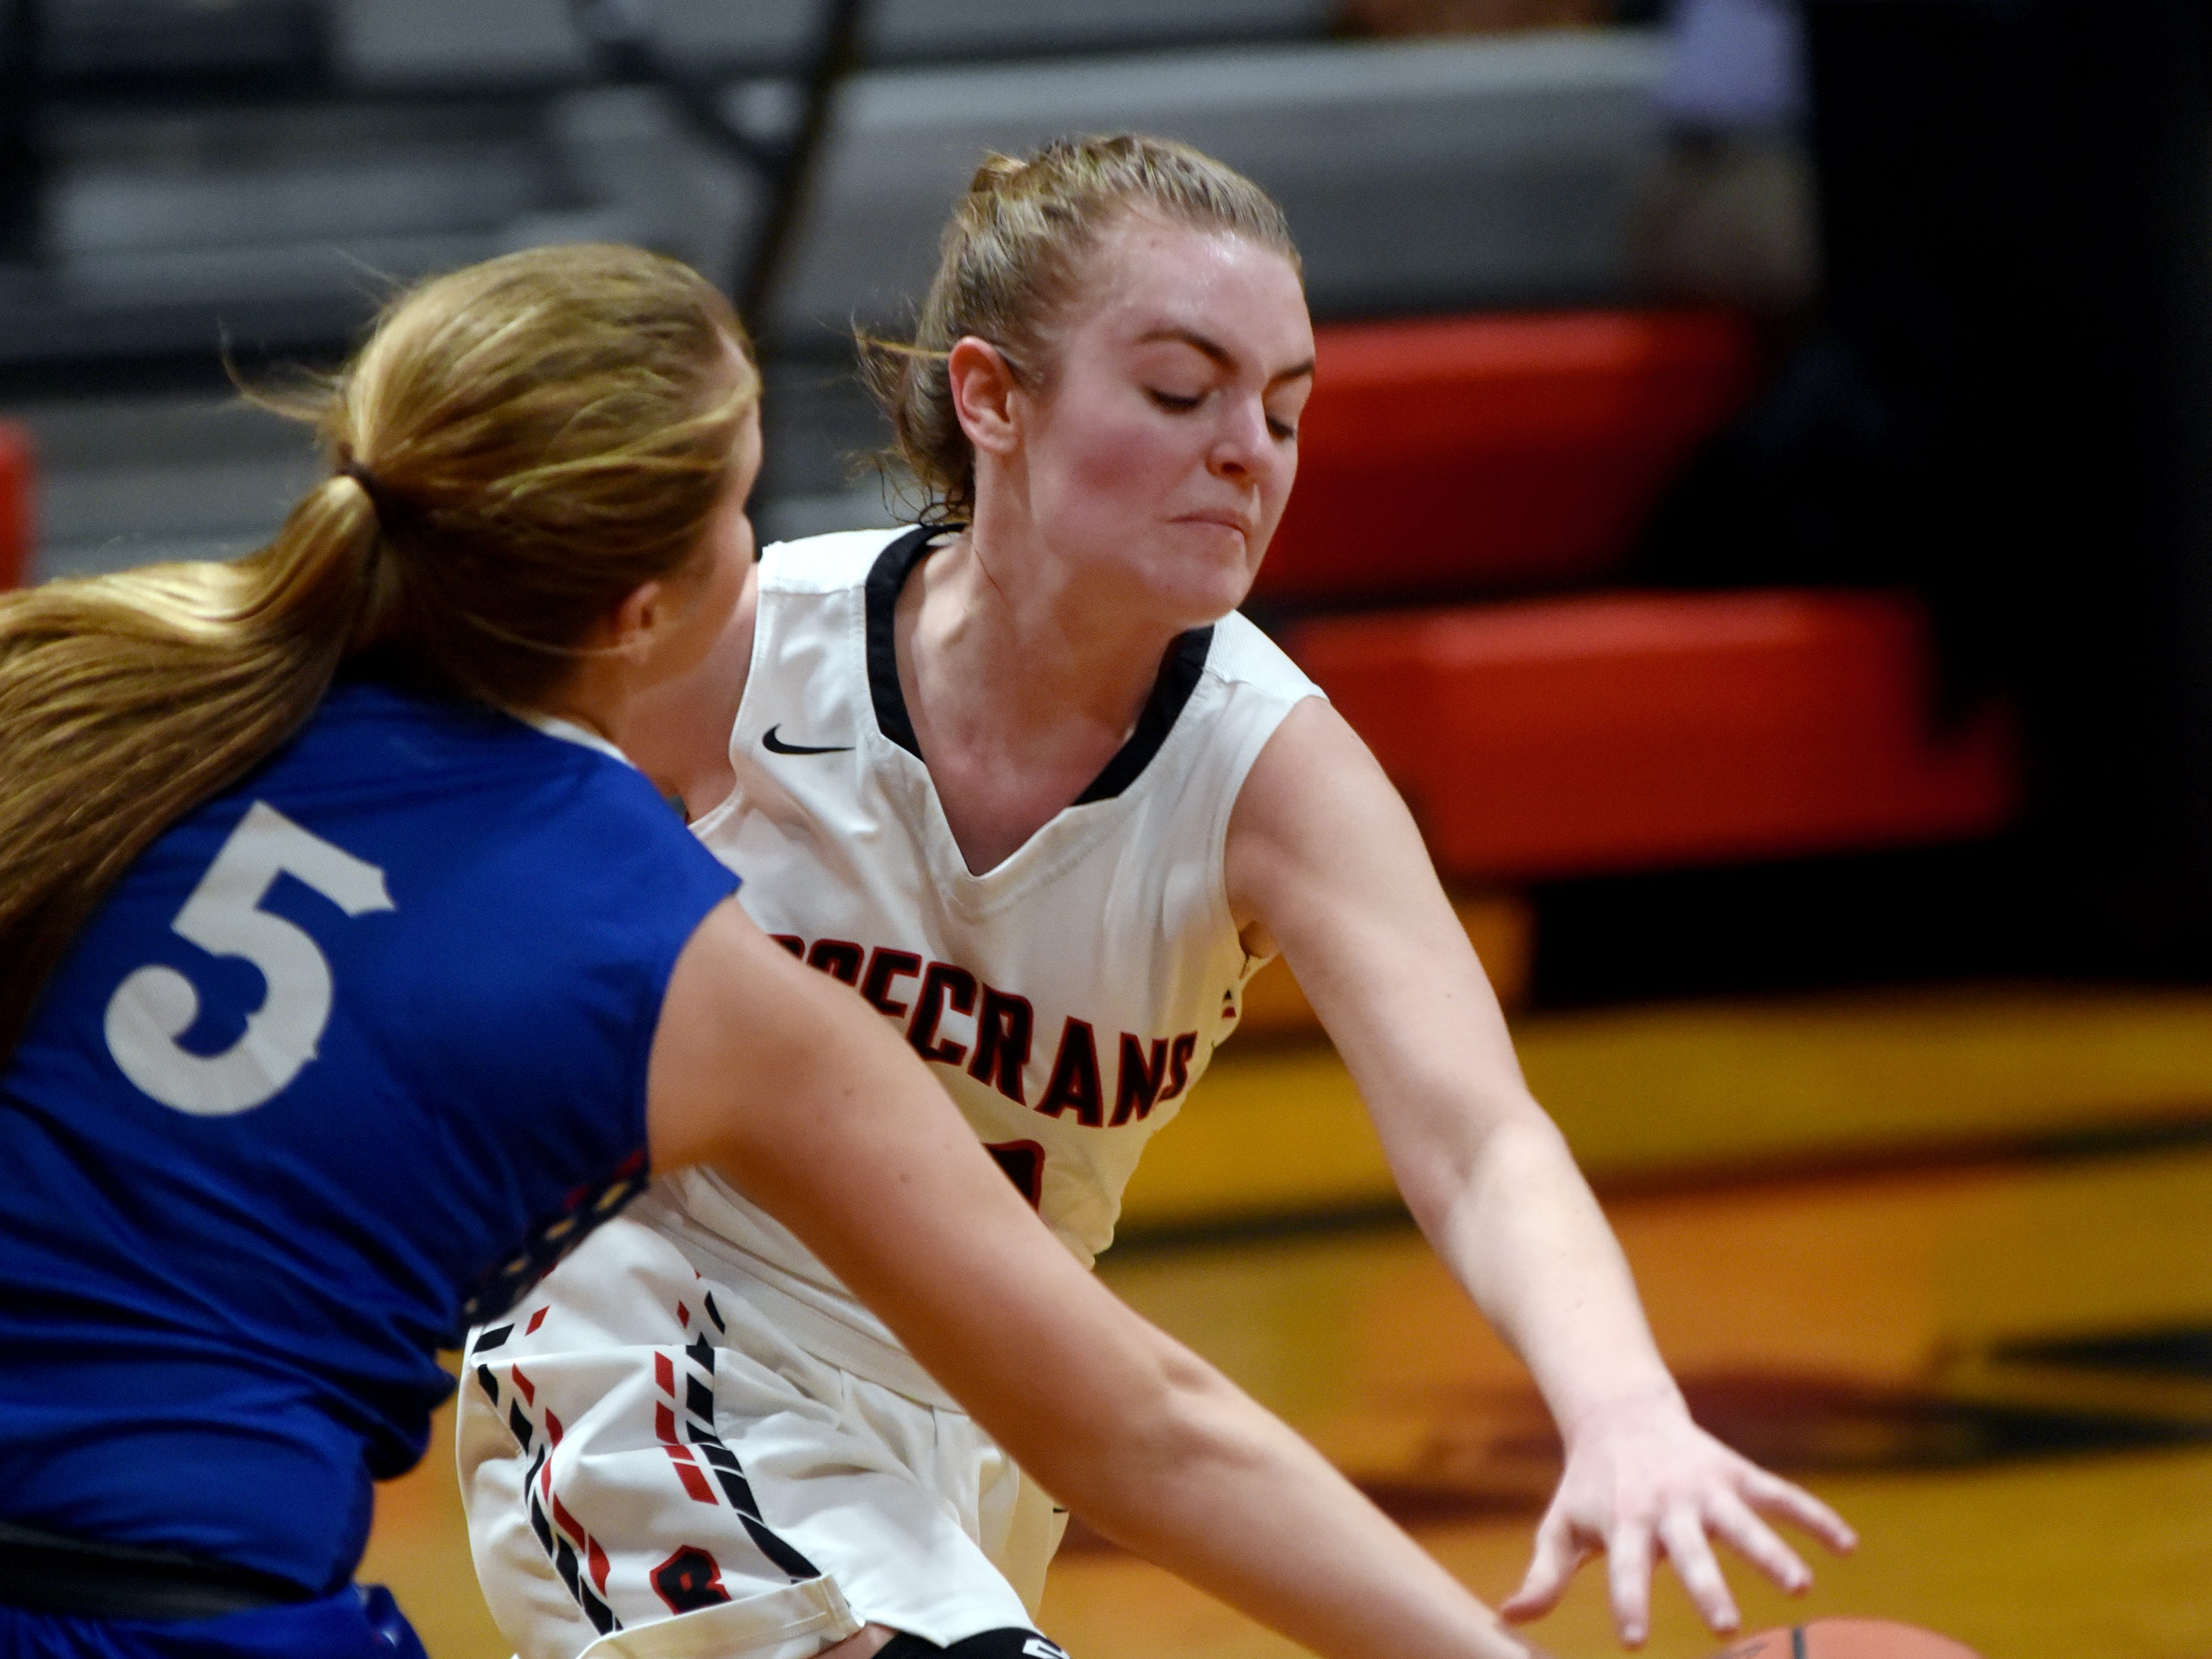 Rosecrans' Tessa Littick reaches for a loose ball against Lakewood on Monday night at Rogge Gymnasium.